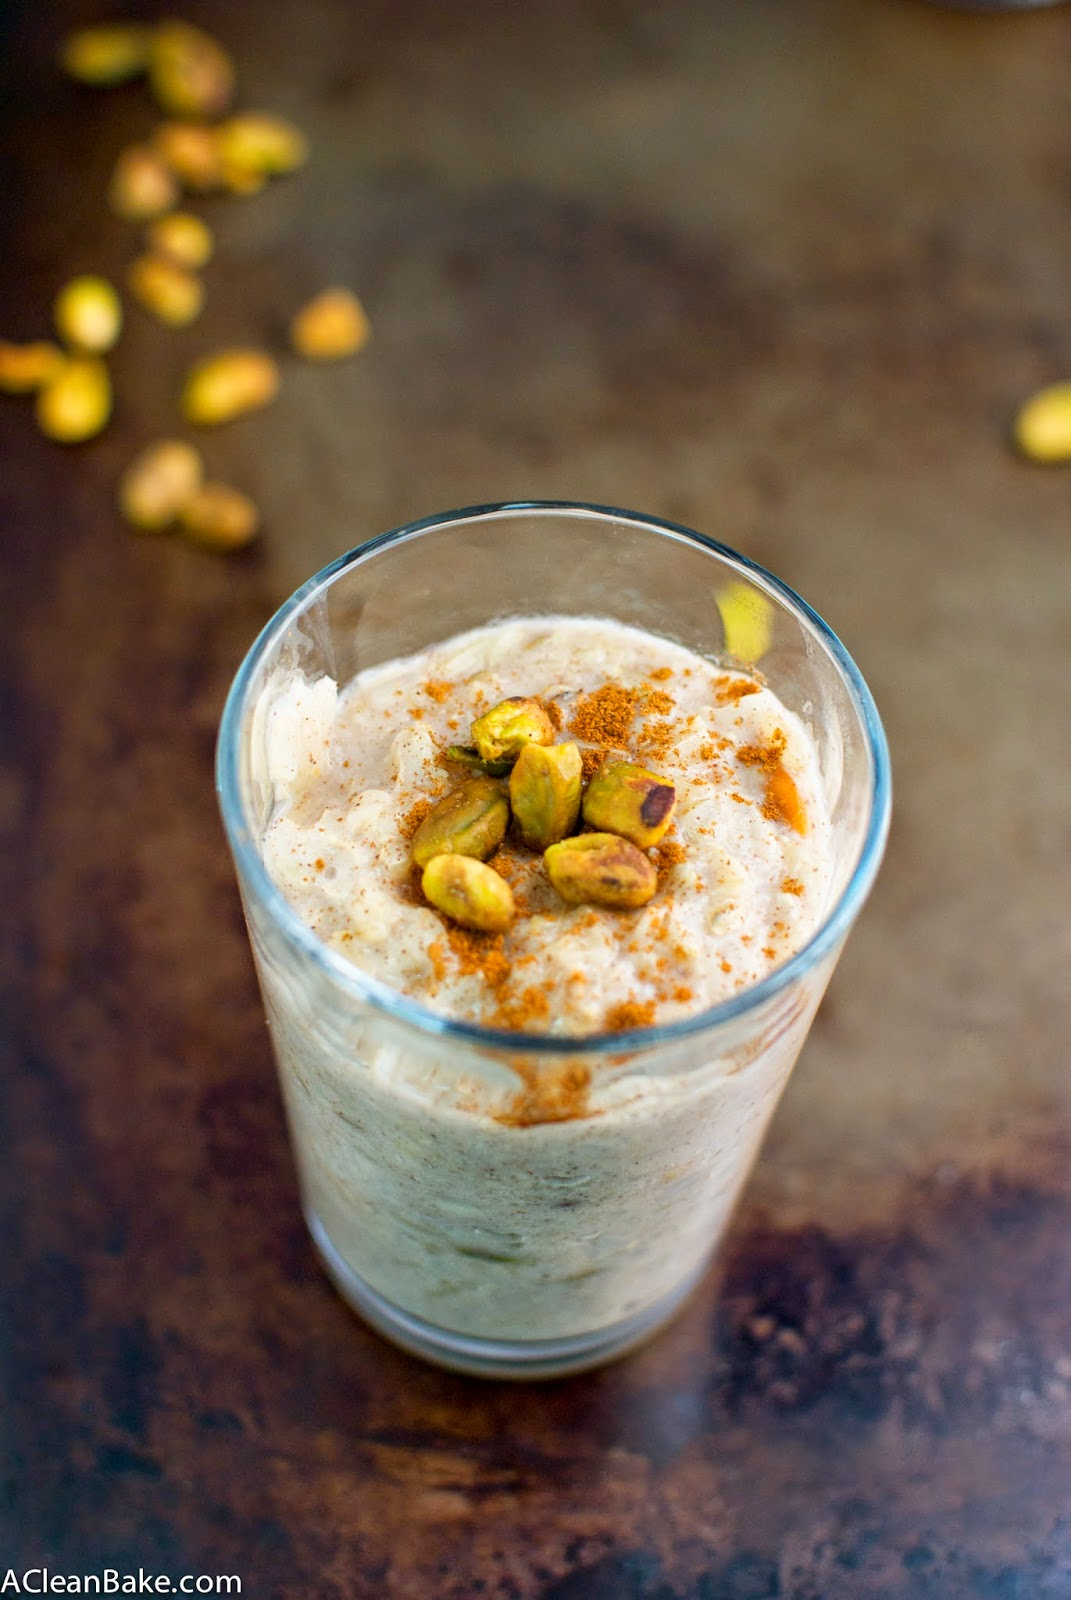 Healthier Pistachio Orange Rice Pudding